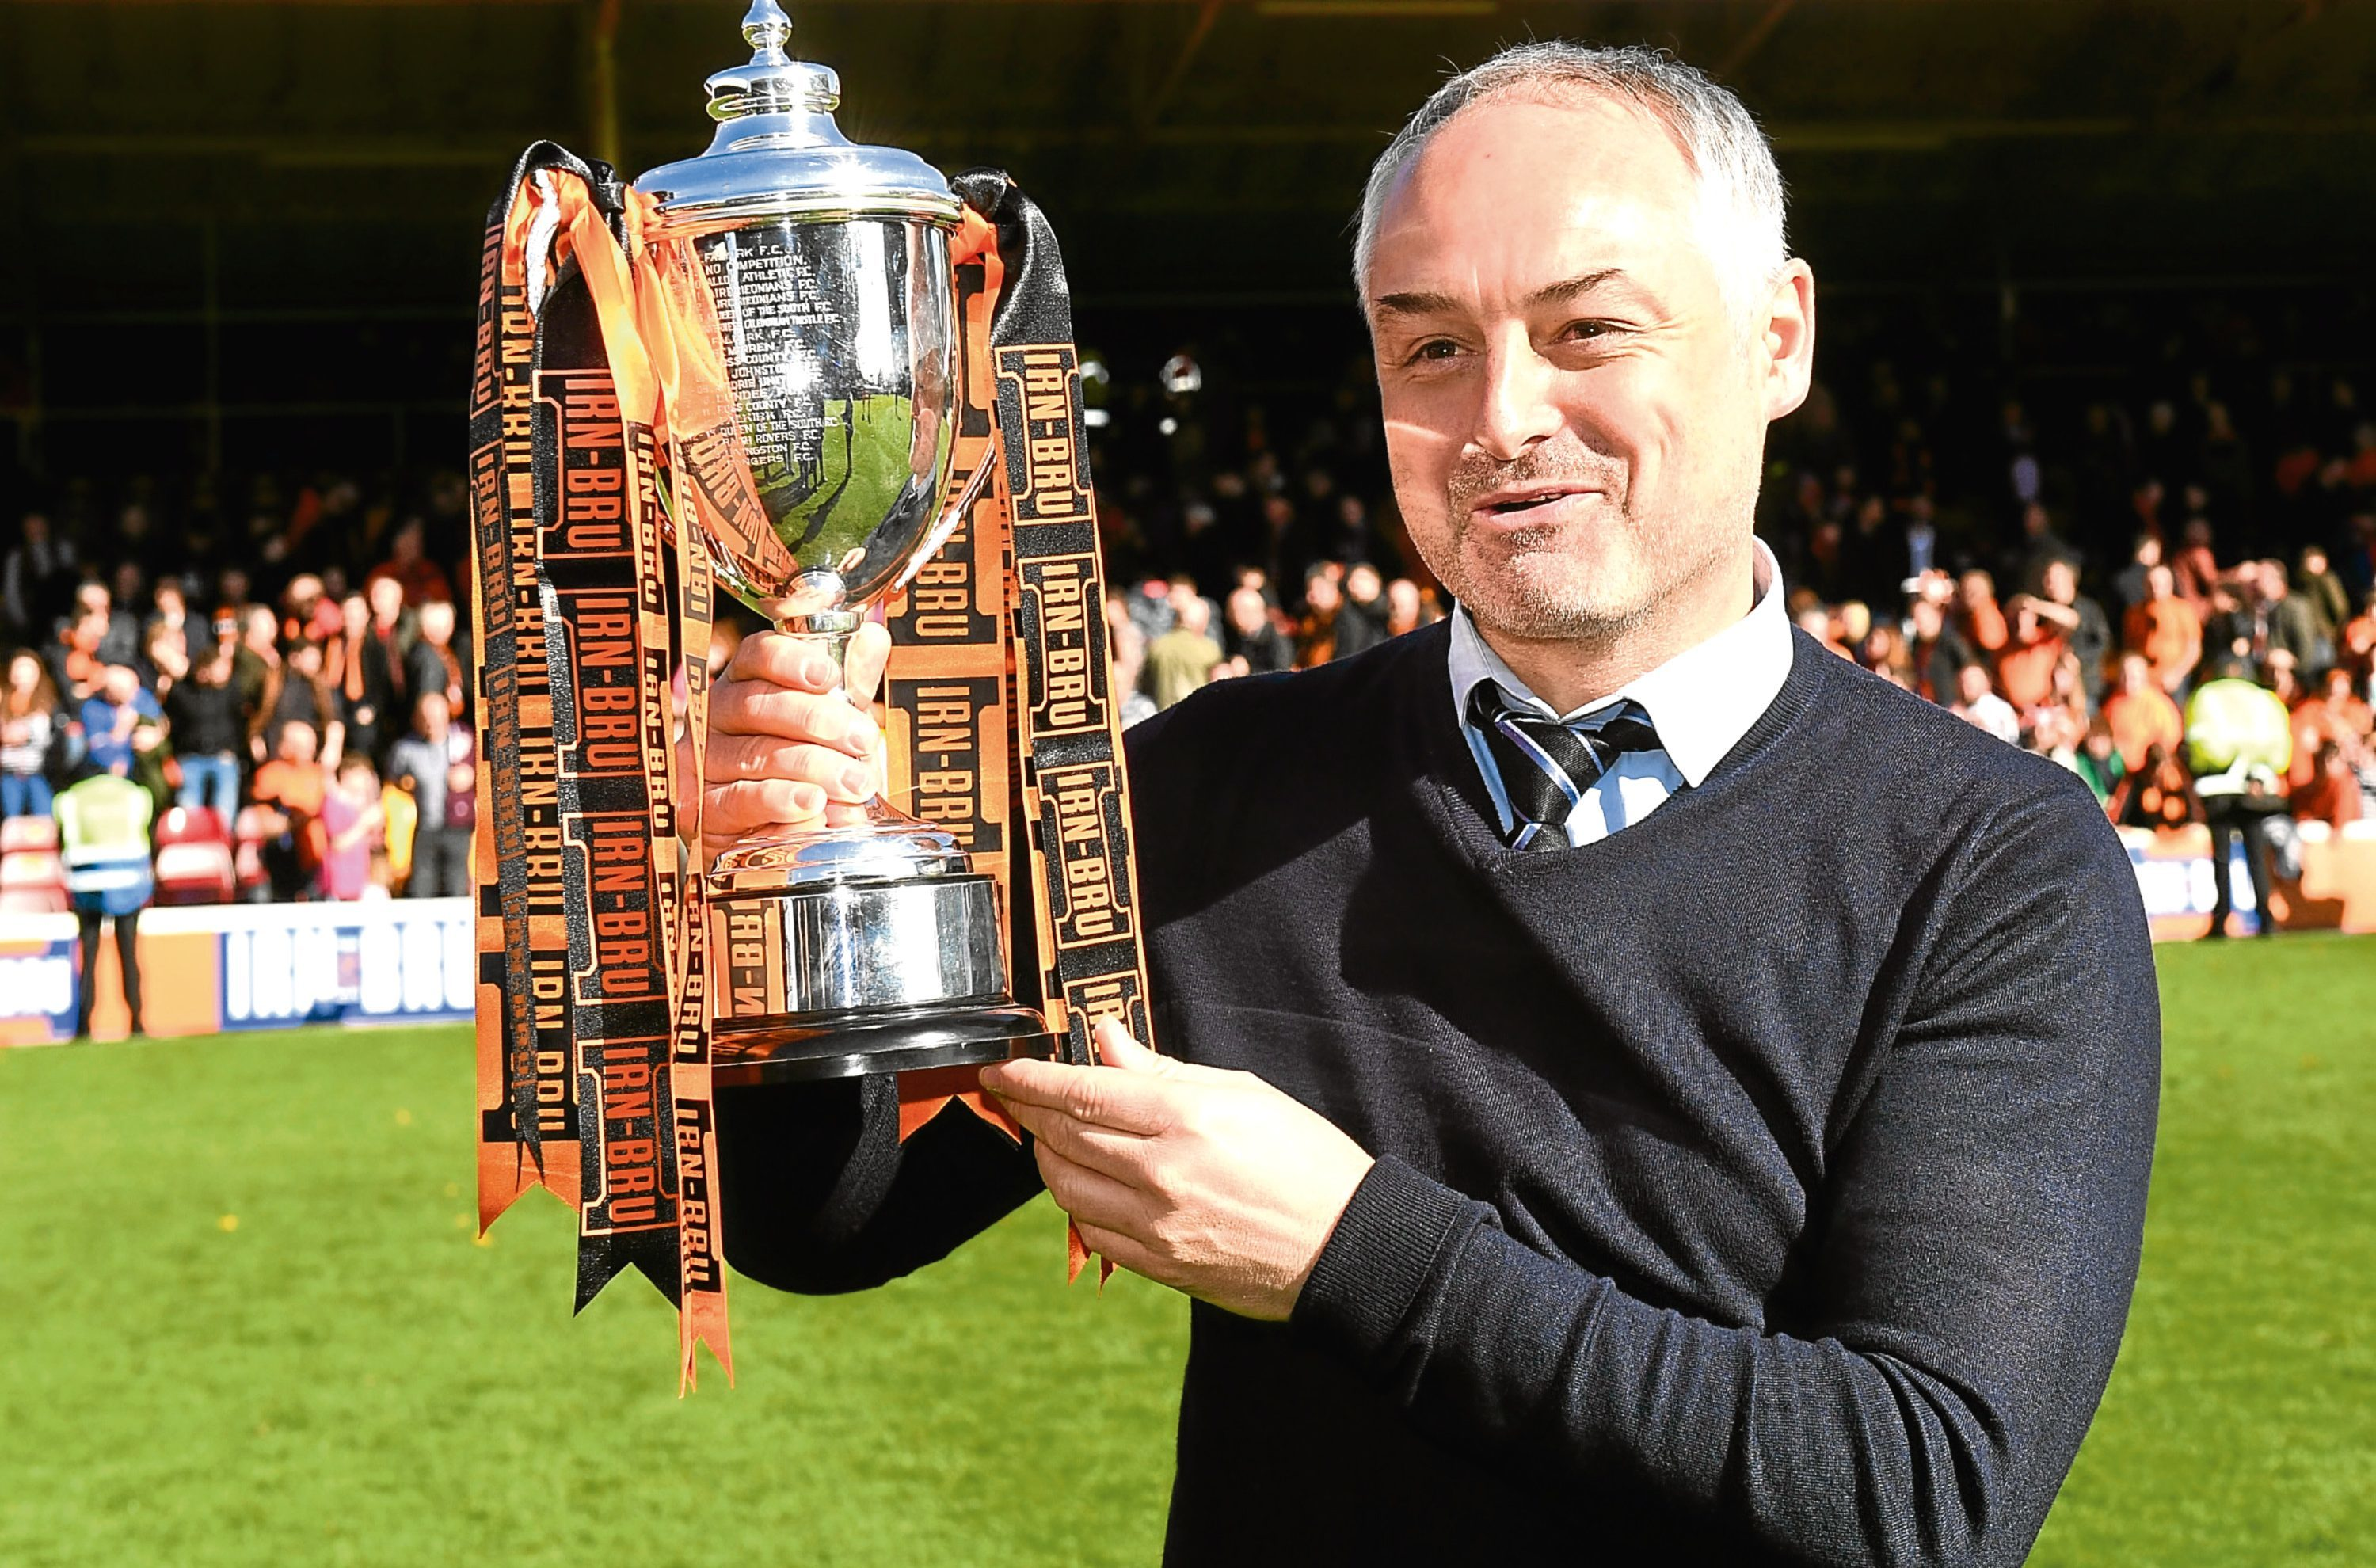 Manager Ray McKinnon joins an esteemed list of United fans to have guided the club to success, and admits his pride for his players is paramount